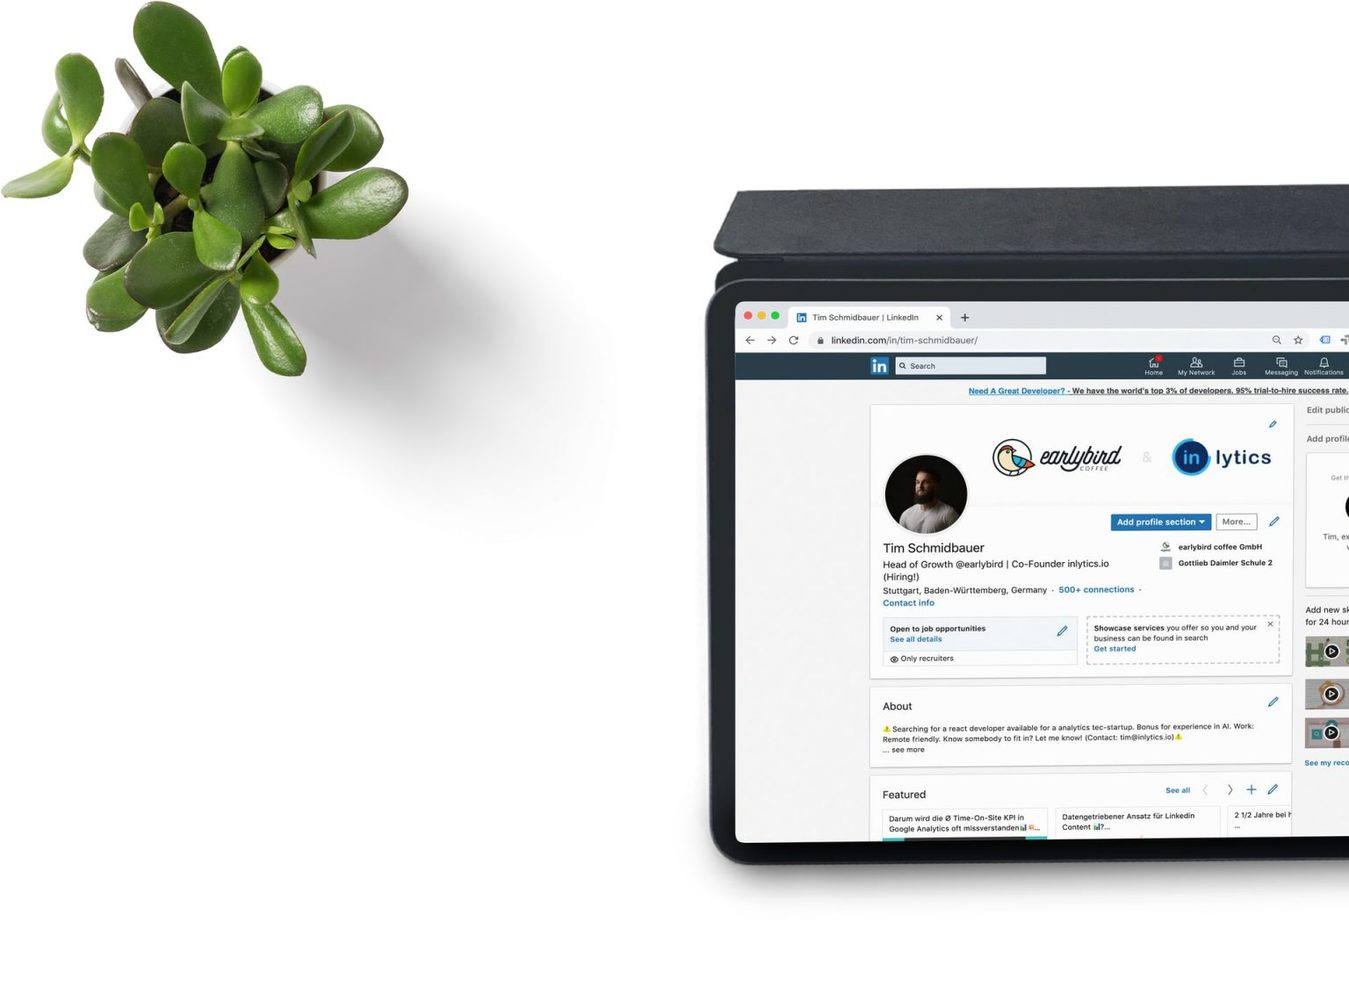 A LinkedIn page displayed on a tablet on a white table with a plant on it